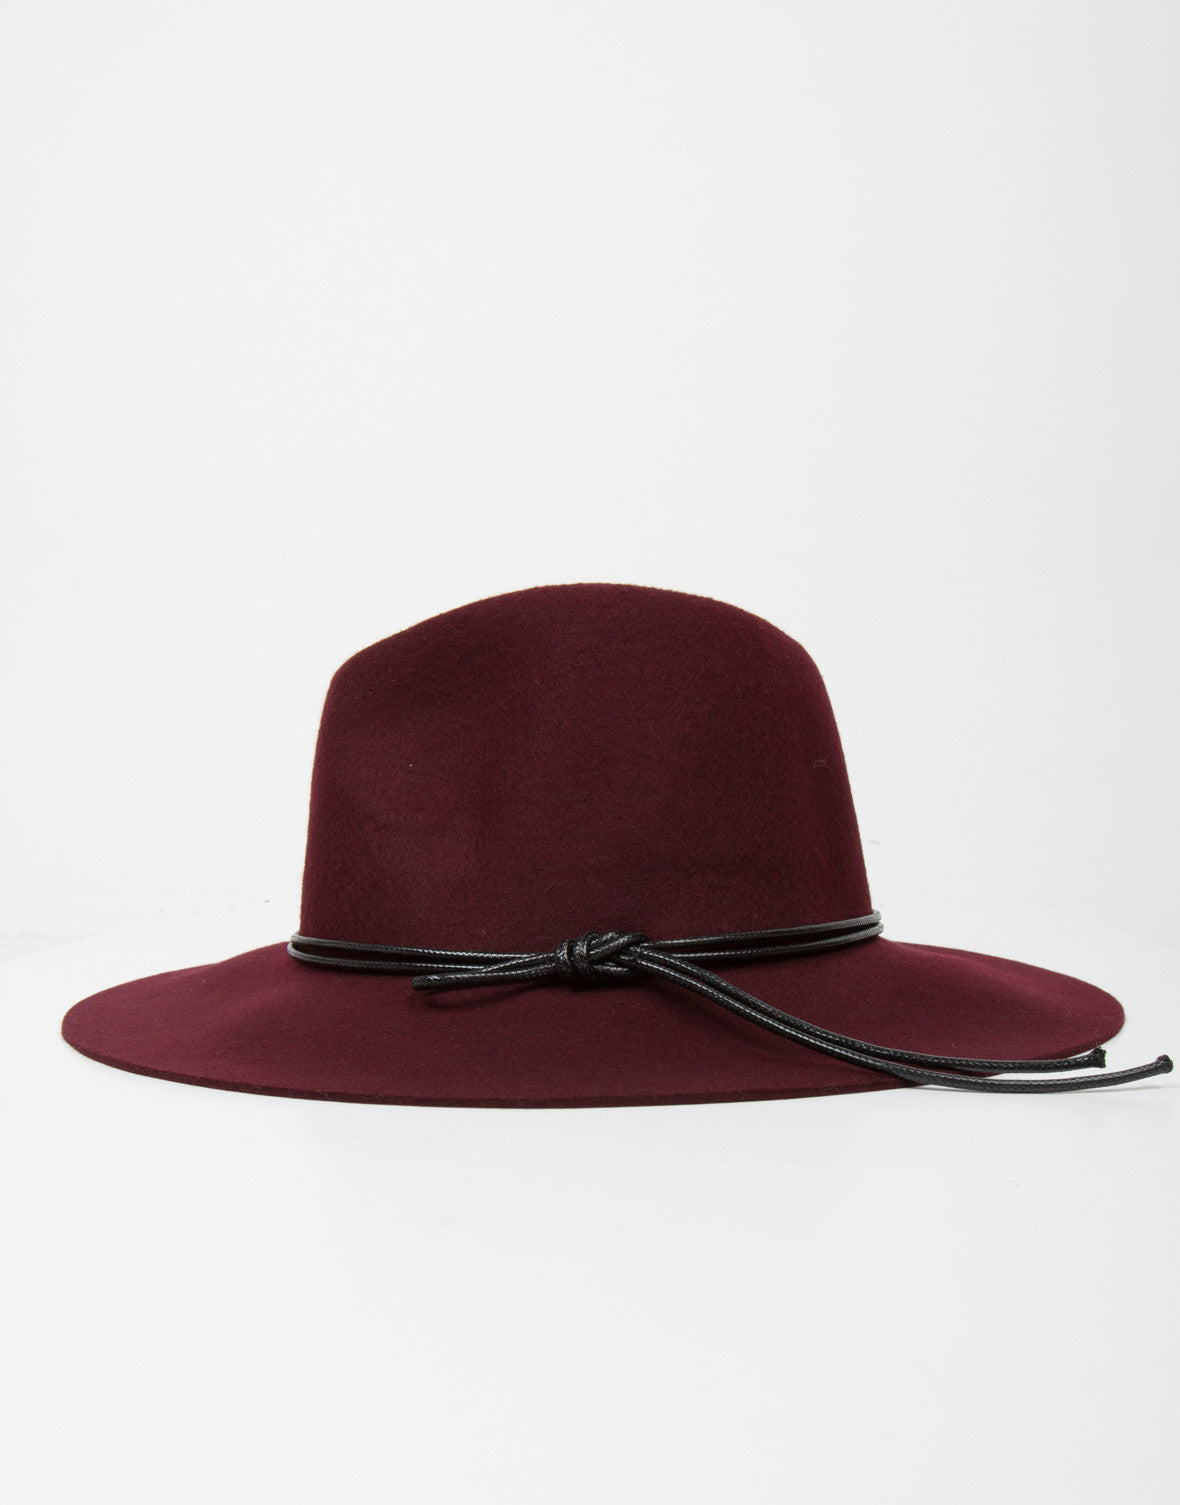 Side View of Floppy Fedora Hat